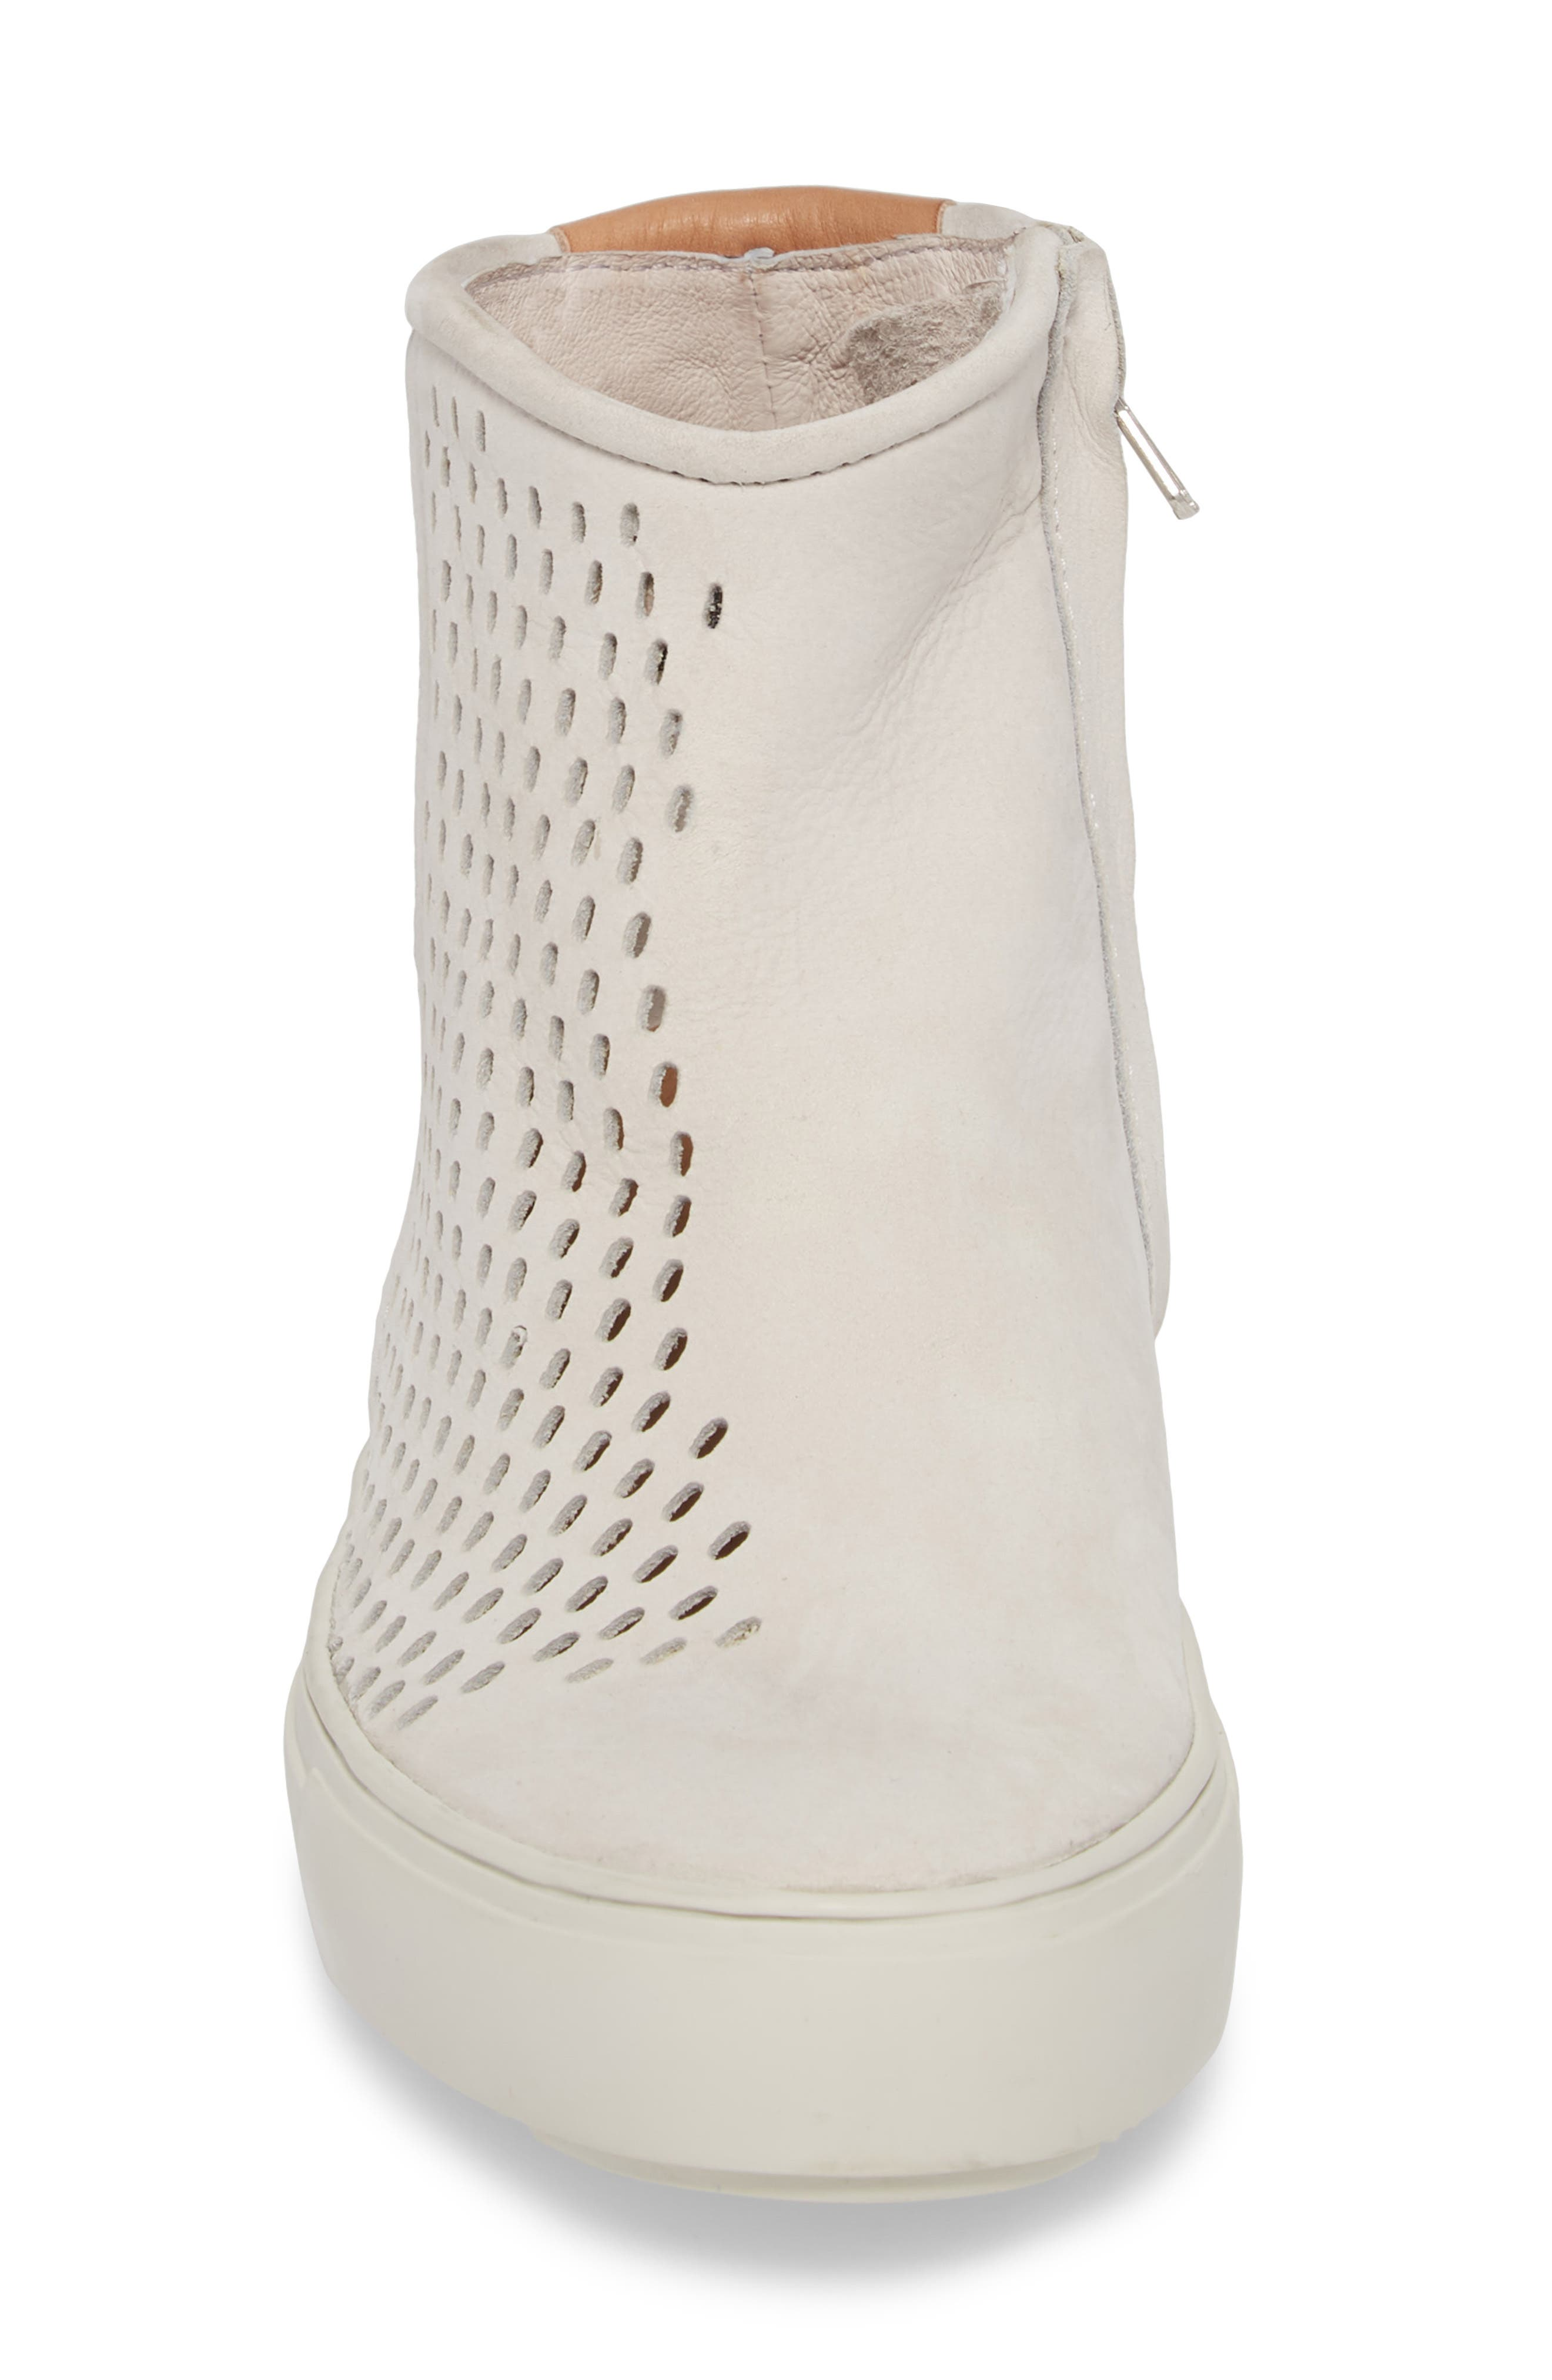 PL89 Zip Bootie,                             Alternate thumbnail 4, color,                             WIND CHIME LEATHER